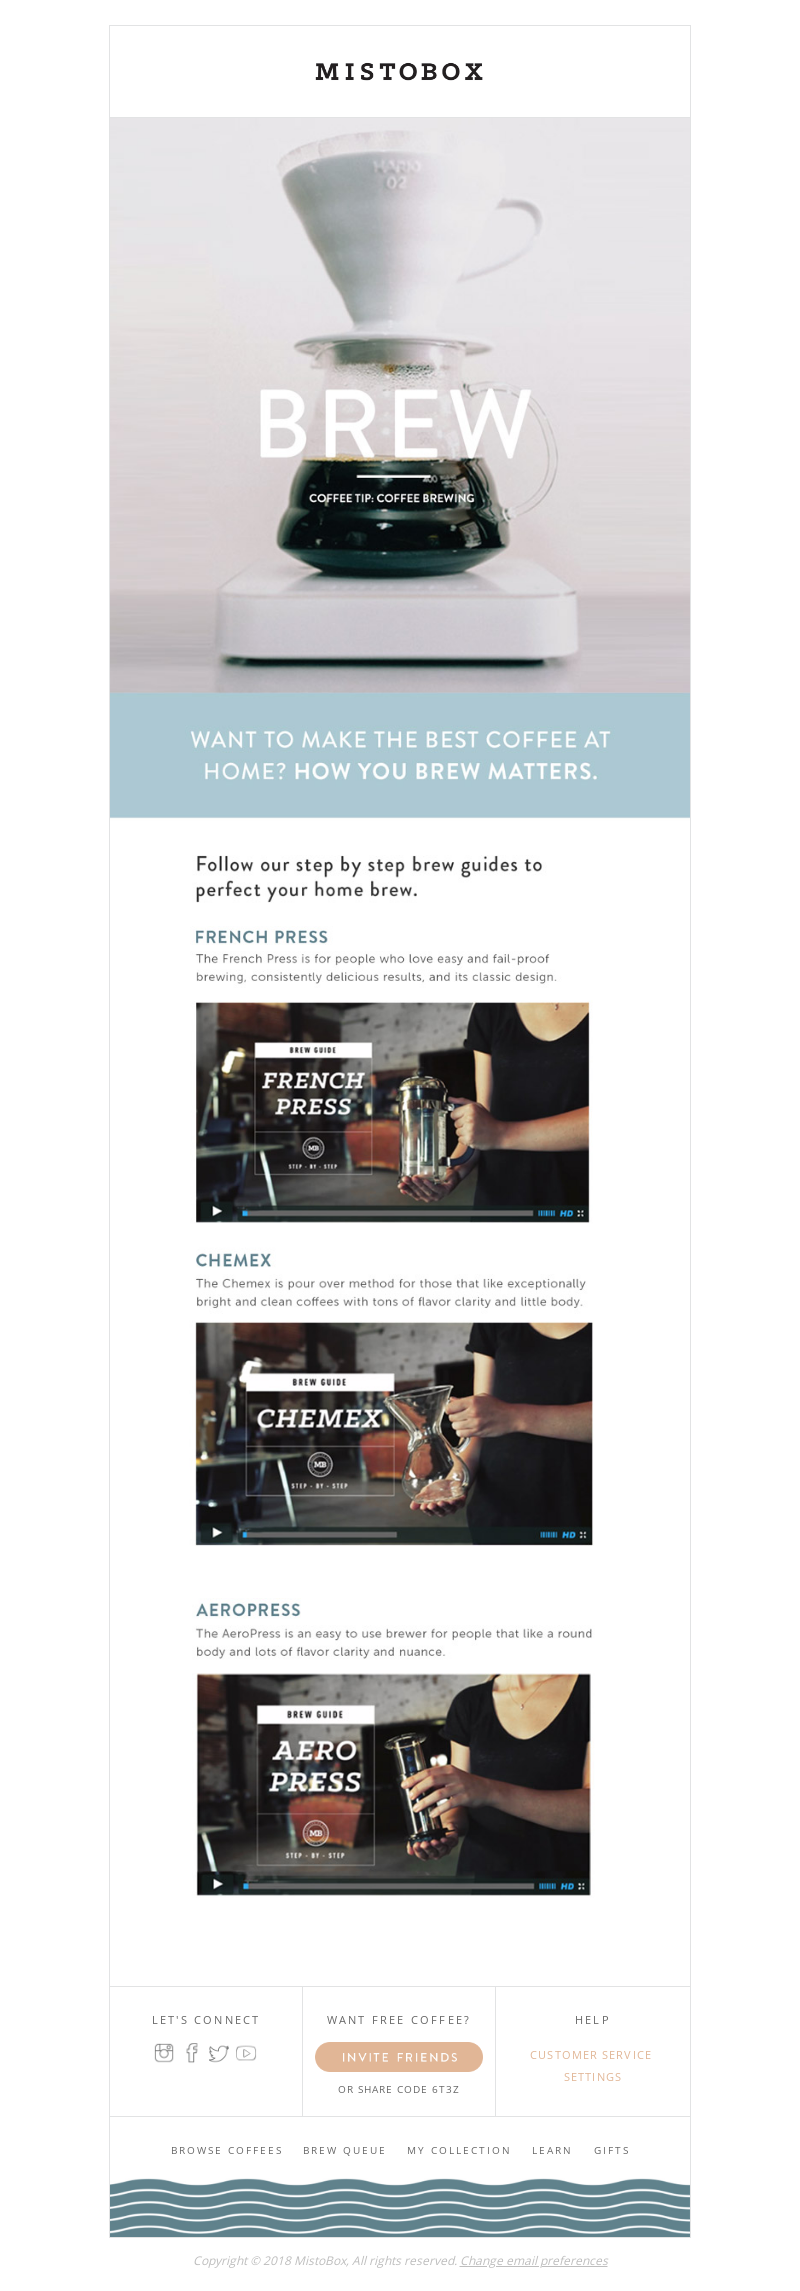 Onboarding email campaign from MistoBox